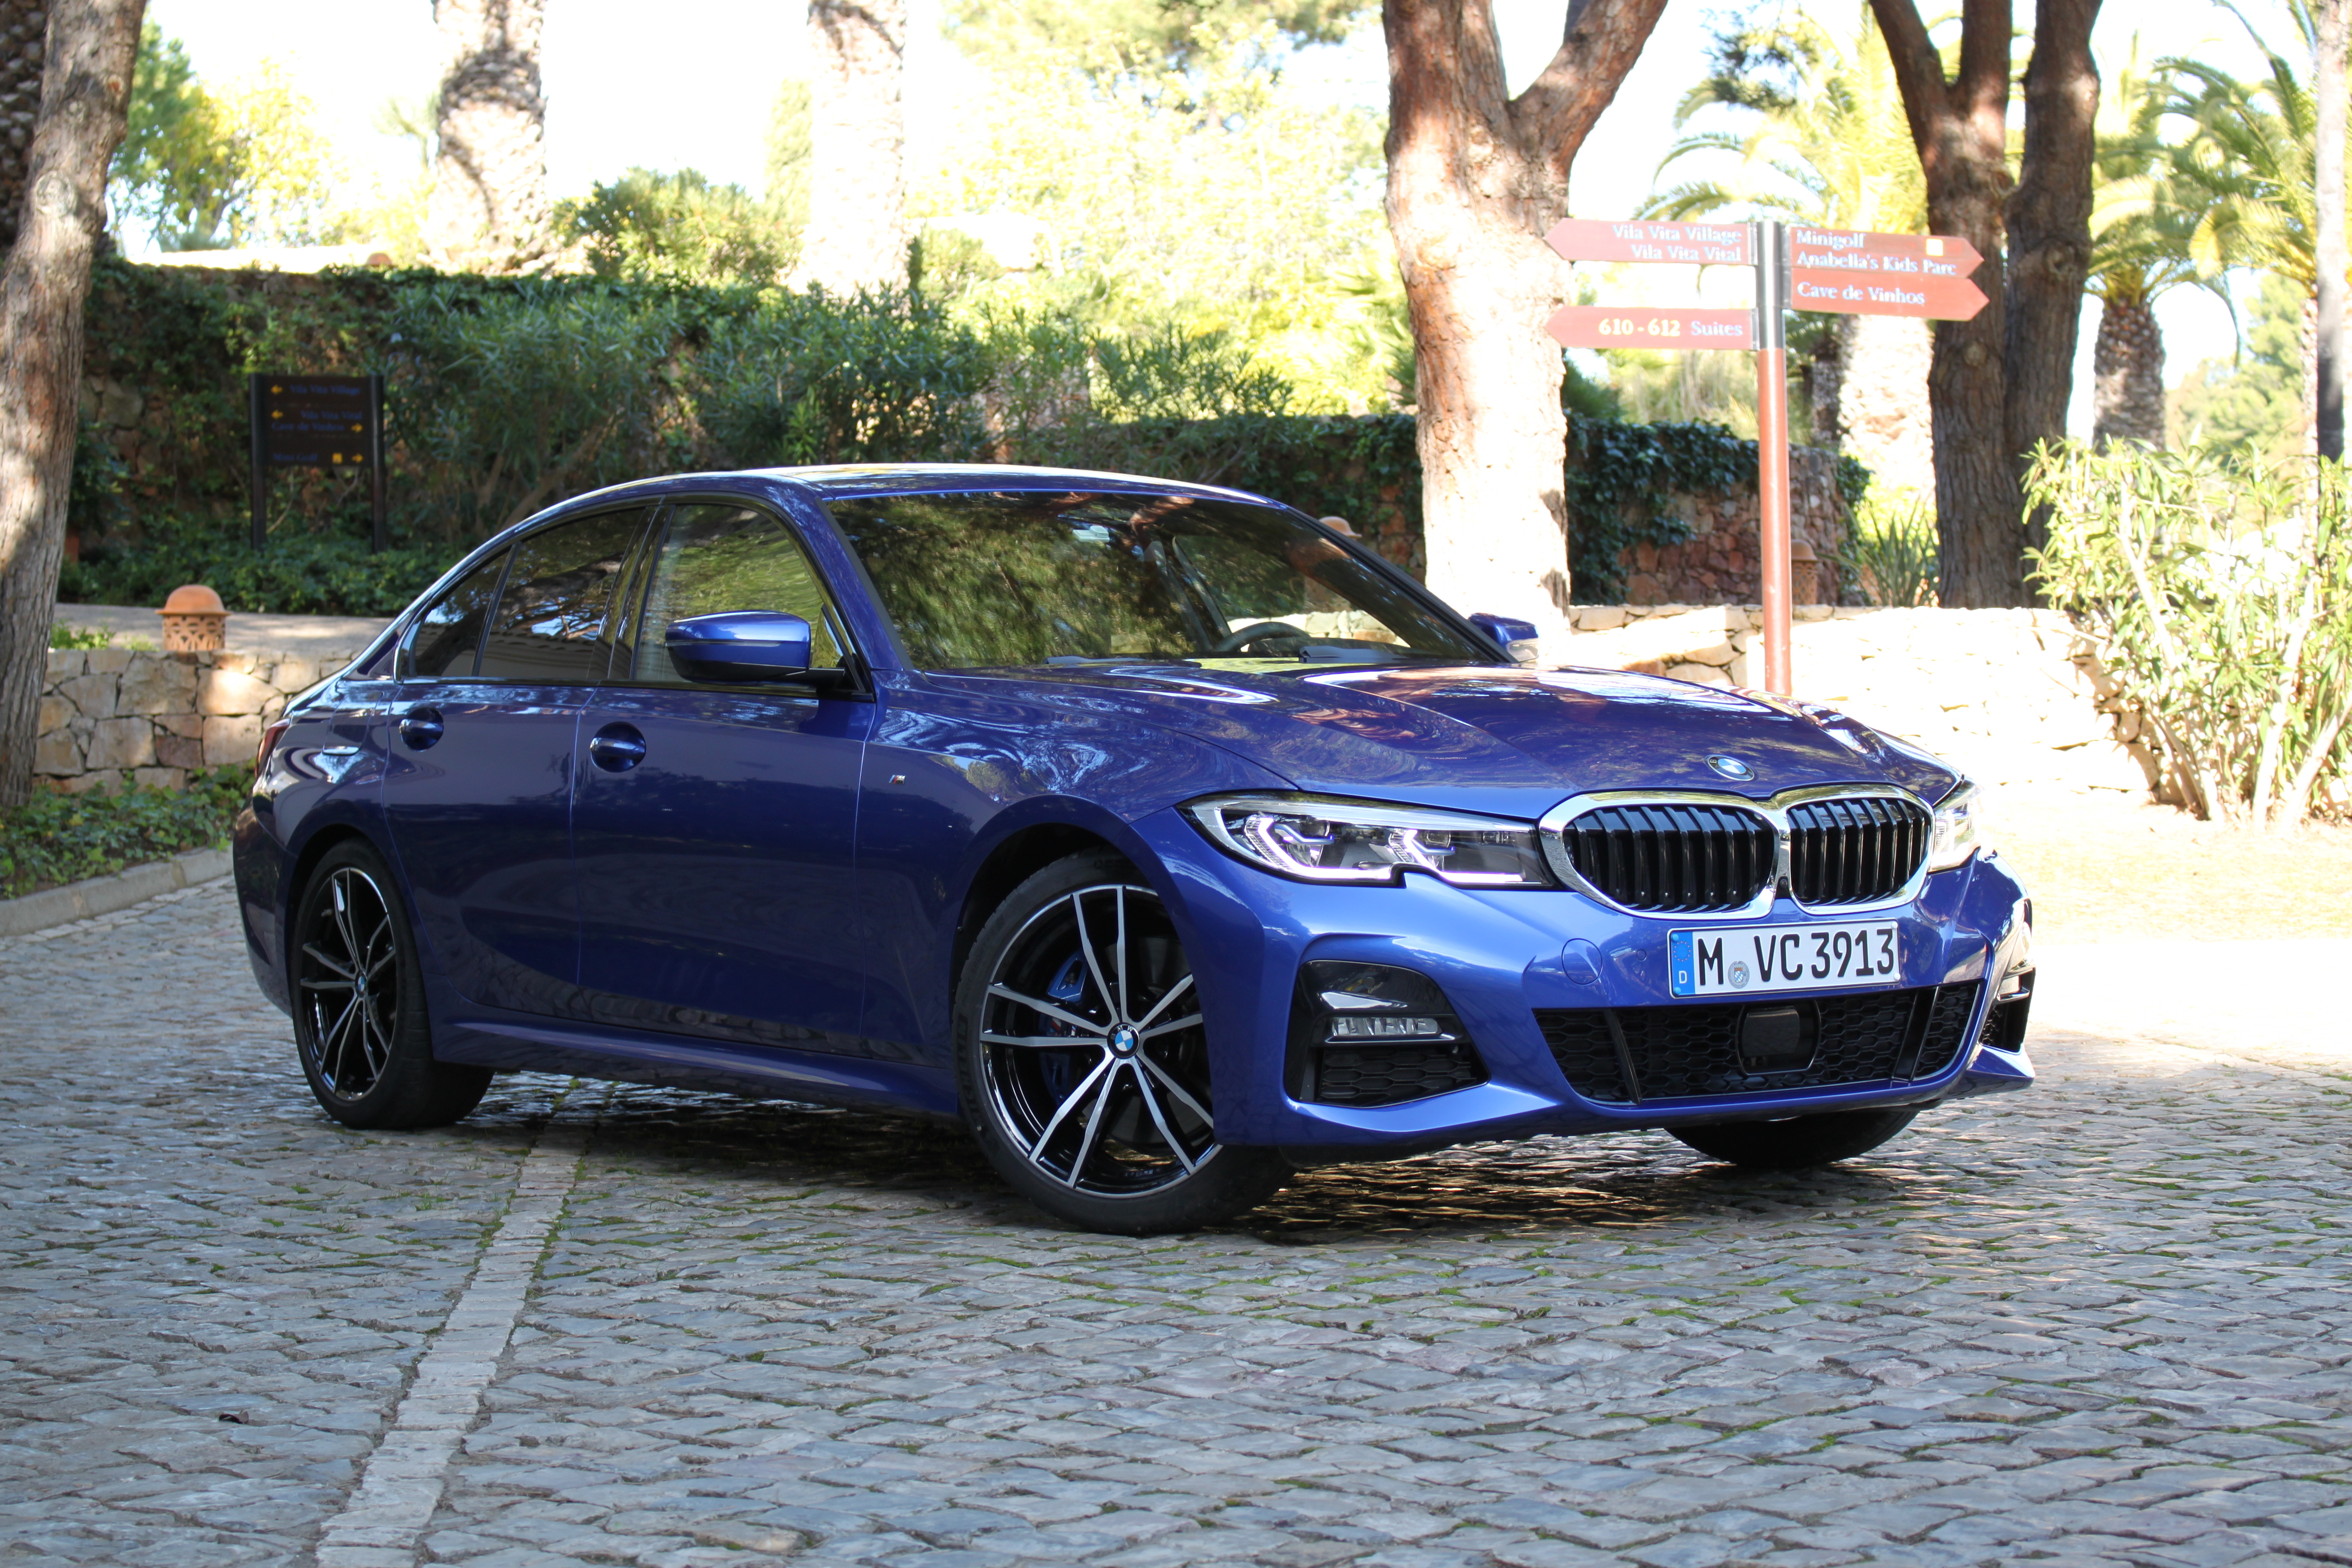 Best Series Of 2020.Complete Car Info For 46 The Best 2020 Bmw 3 Series Brings